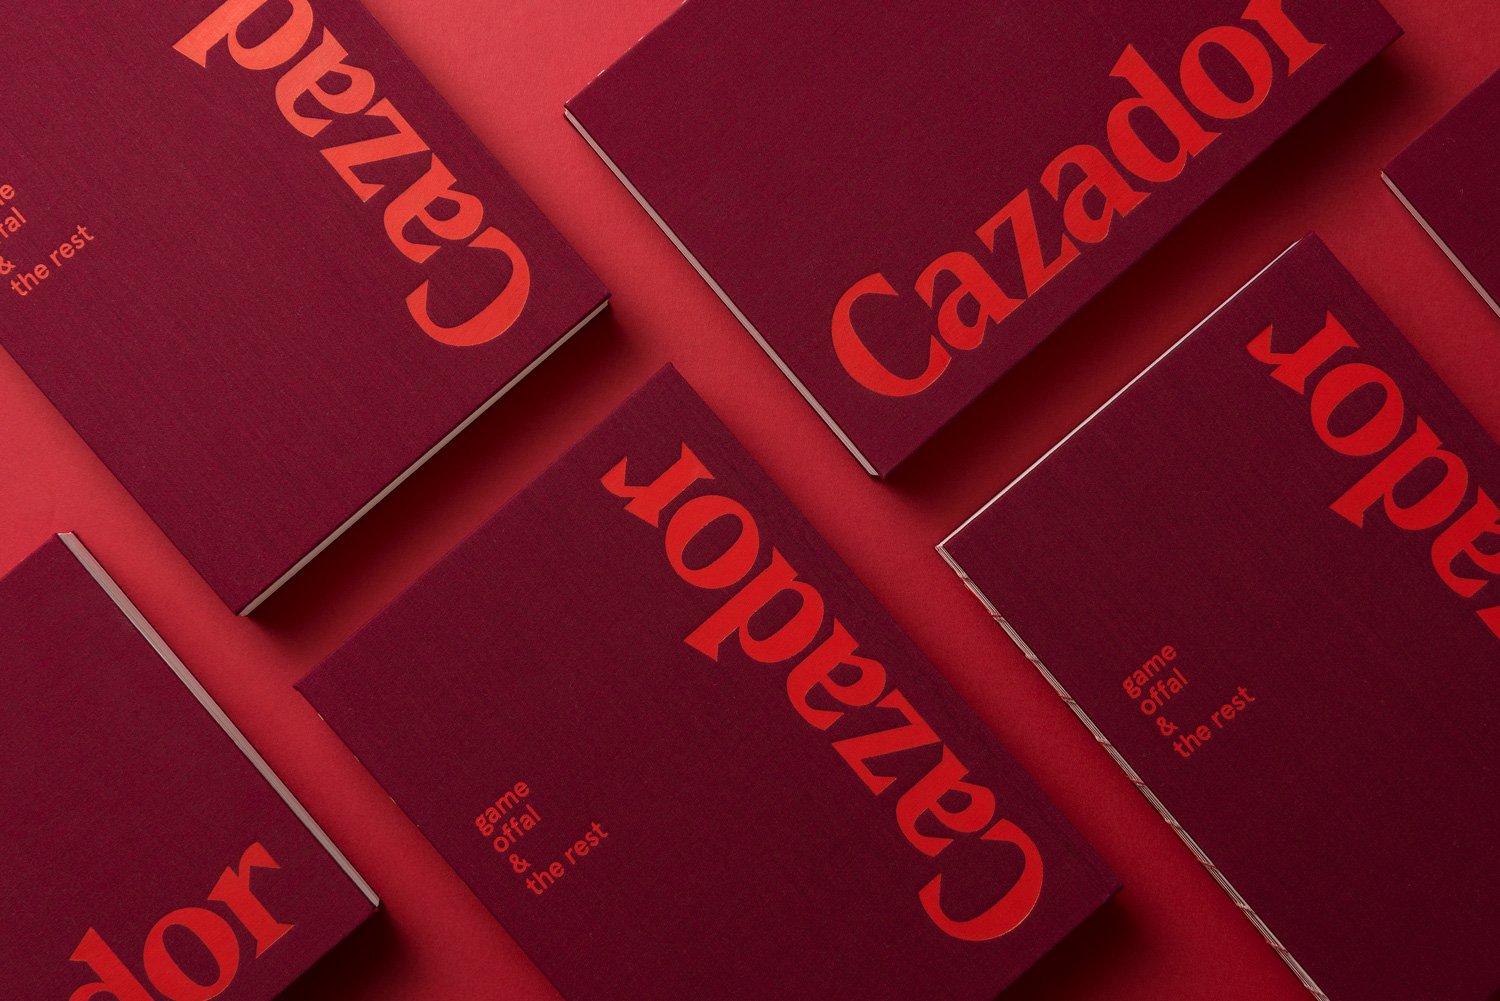 Editorial Design: Cazador Cookbook by Tim Donaldson